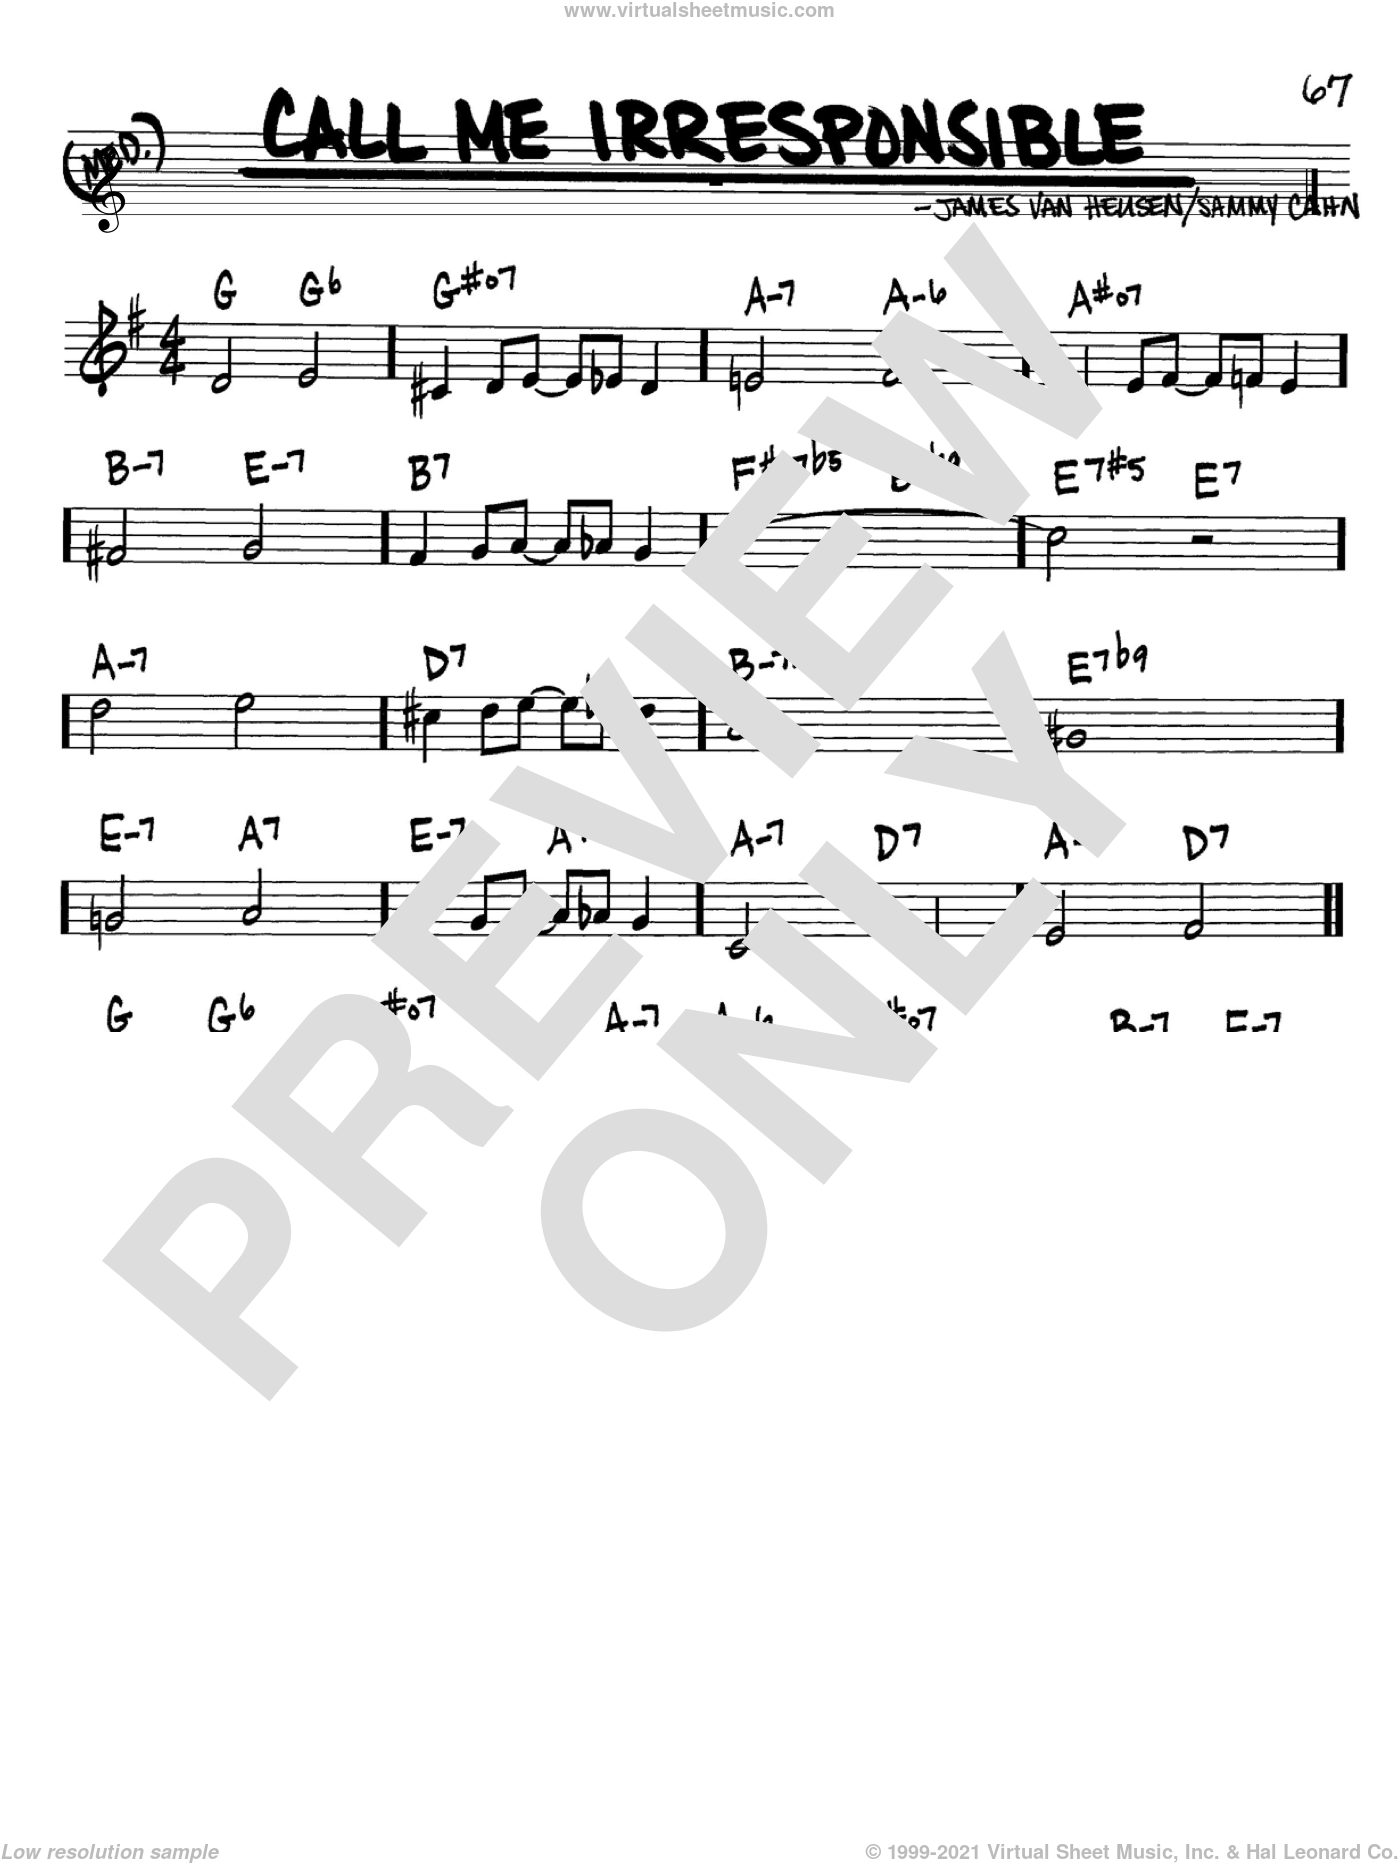 Call Me Irresponsible sheet music for voice and other instruments (Bb) by Sammy Cahn, Frank Sinatra and Jimmy van Heusen. Score Image Preview.